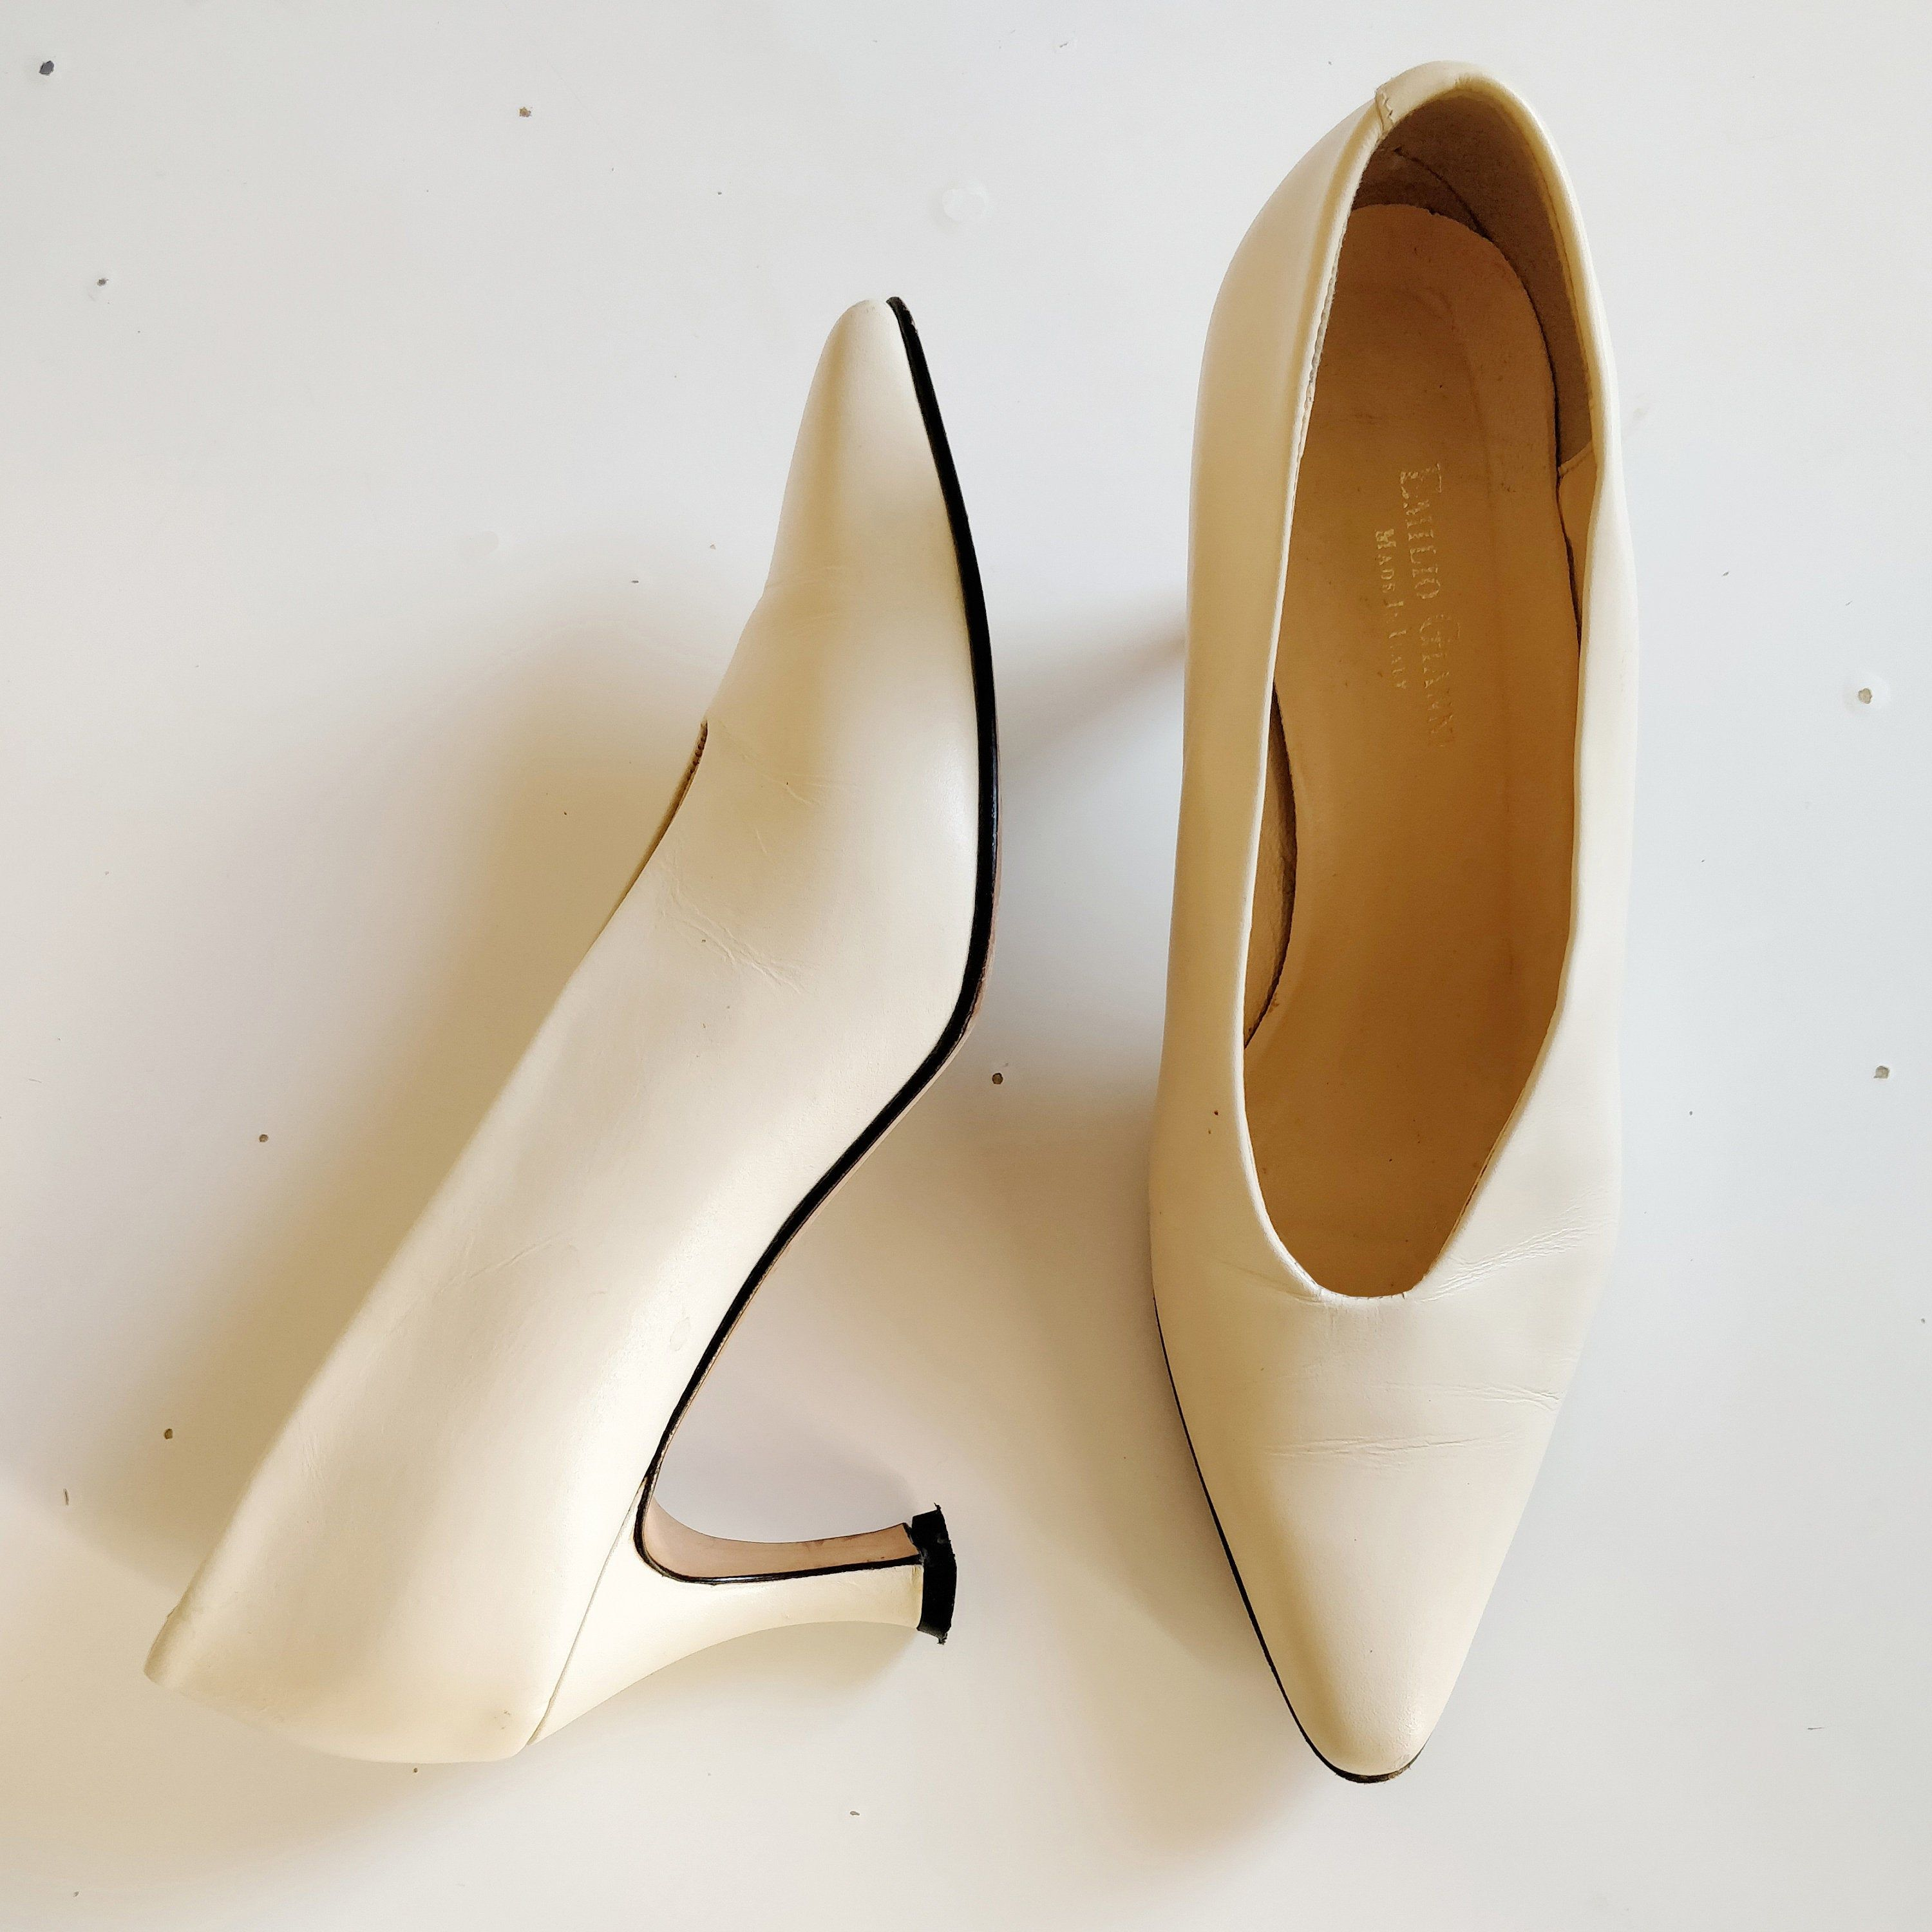 80s Emilio Gianni V Neck Leather Pumps Made In Italy Leather Pumps Pumps Leather